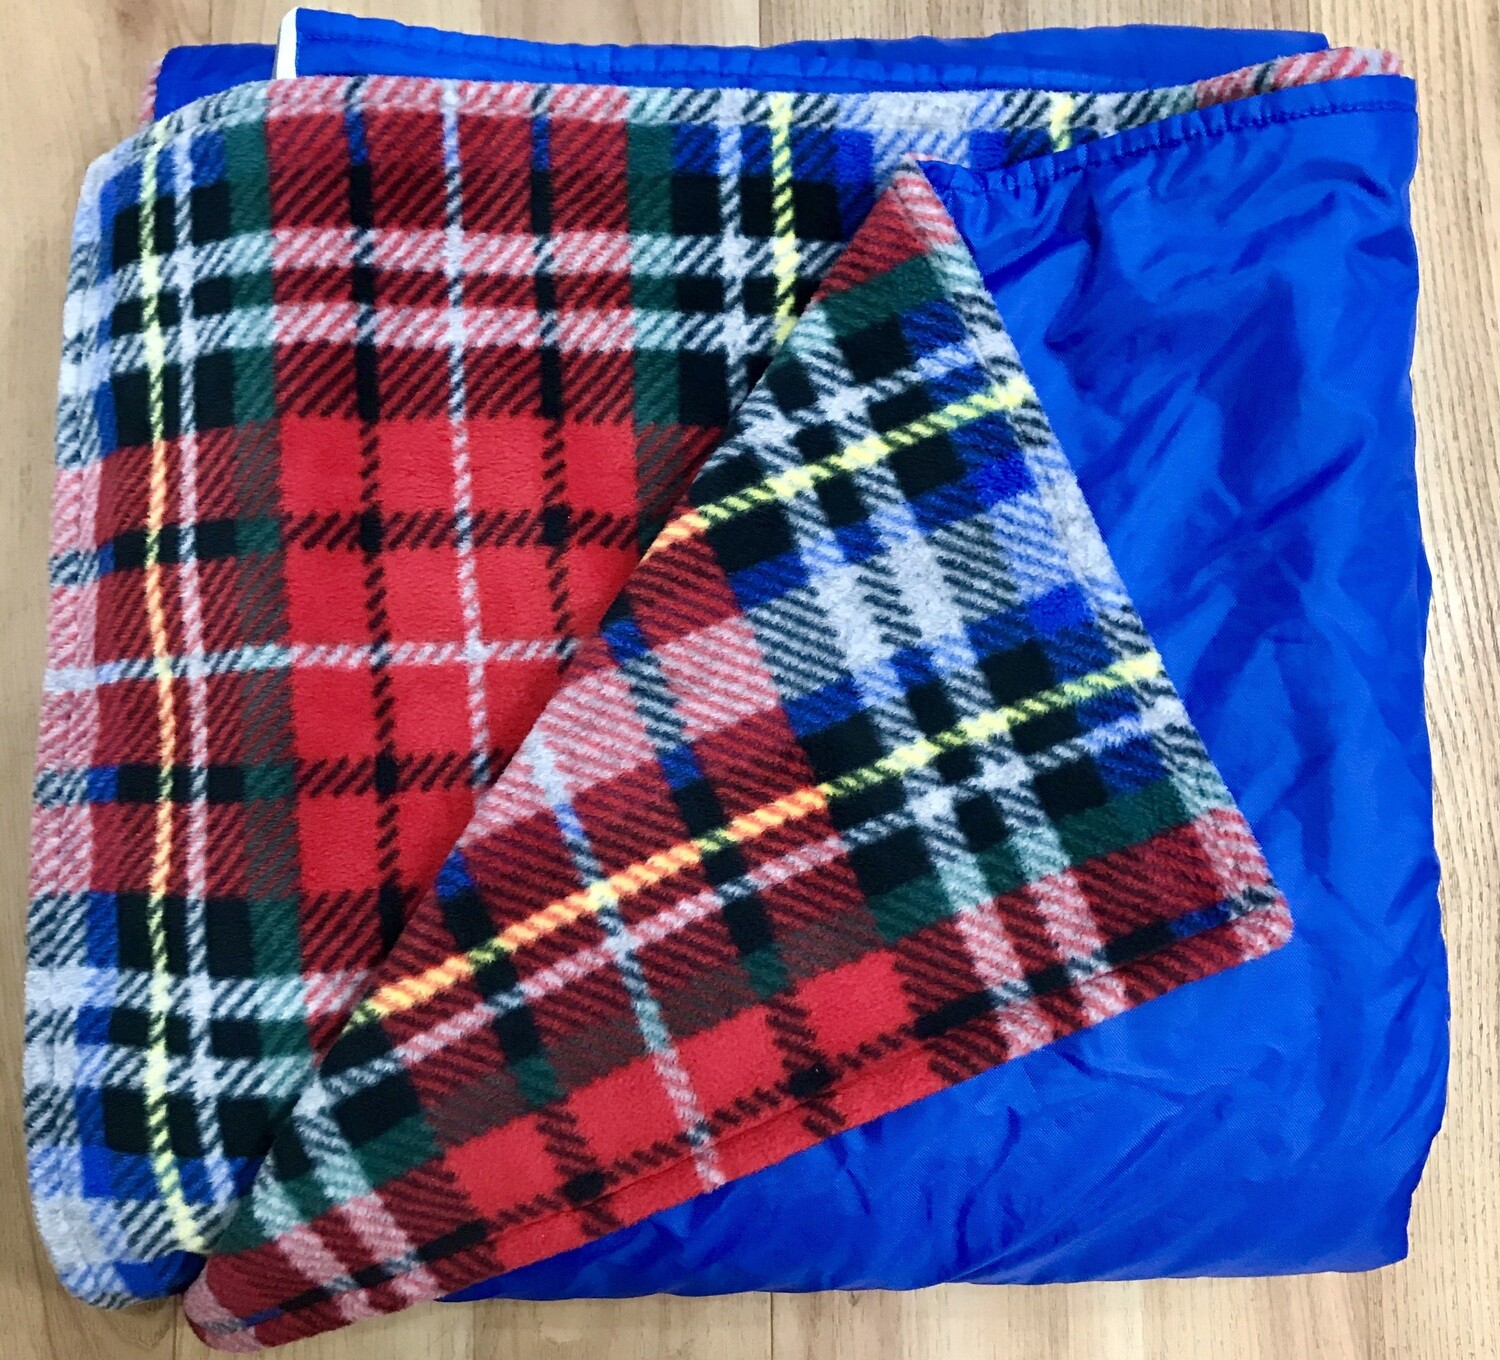 Pitt Patt Blanket 3F- Blue/Red Plaid